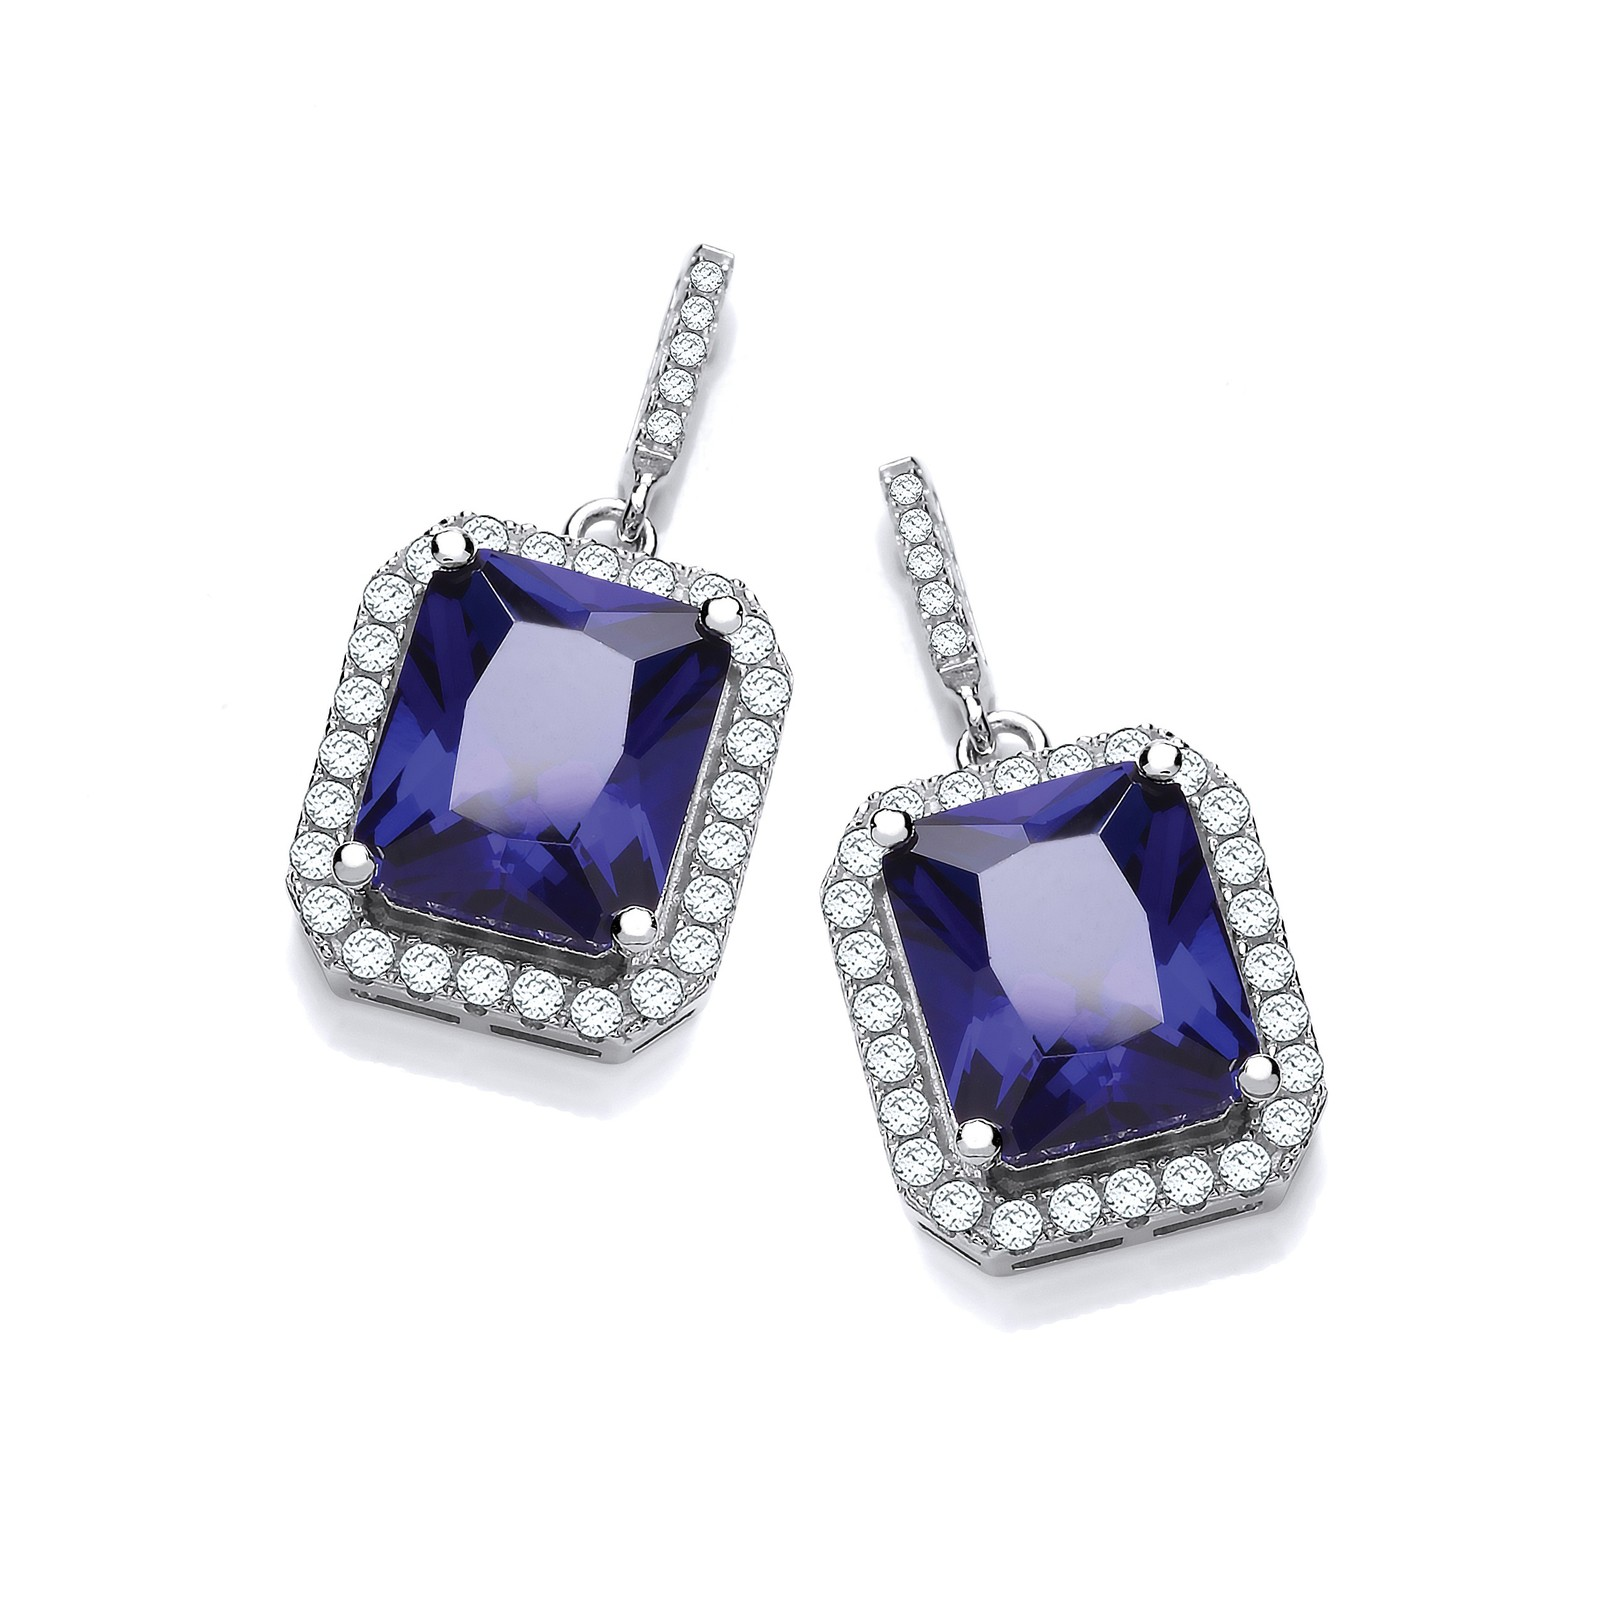 Micro Pave Emerald Cut Sappire Blue Cz Drop Earrings